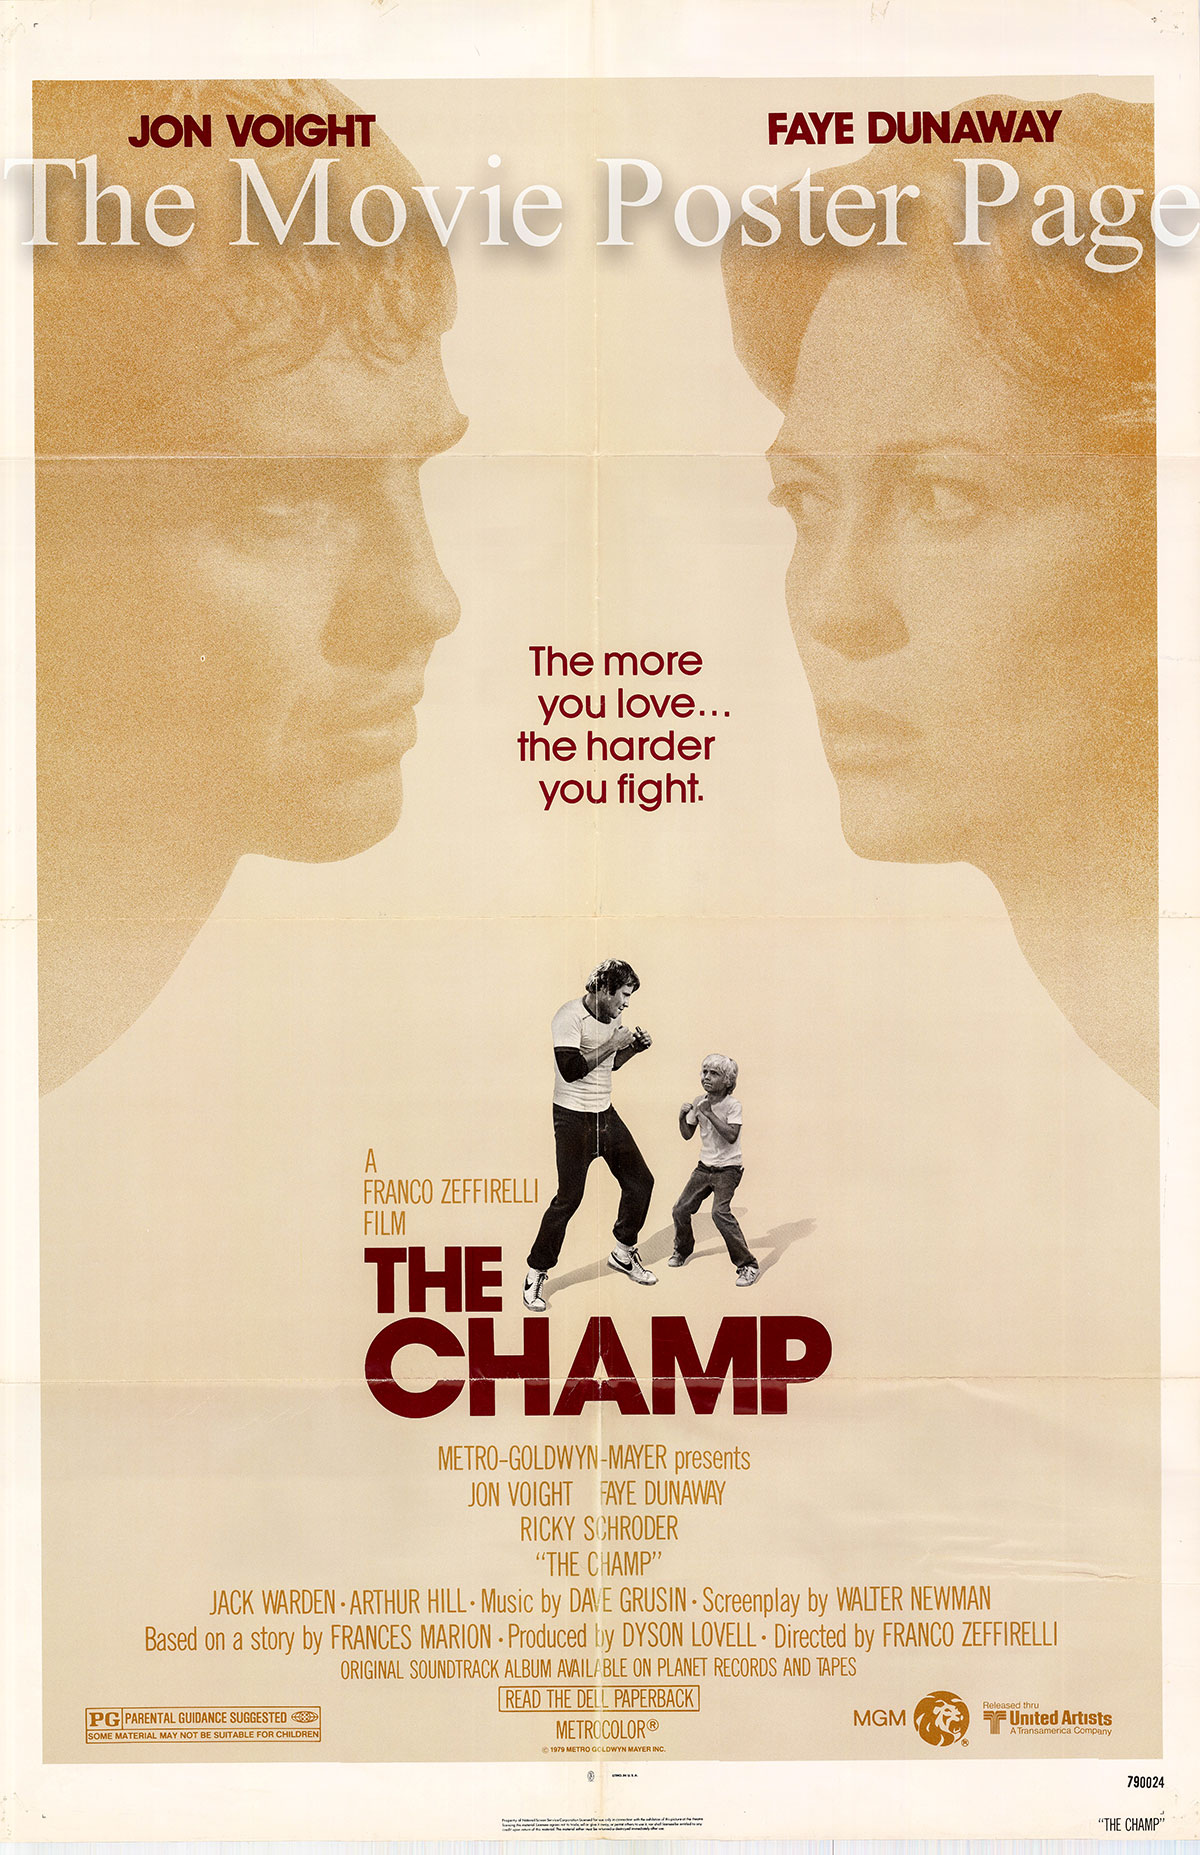 Pictured is a US promotional one-sheet for the 1979 Franco Zefirelli film The Champ starring Jon Voight.